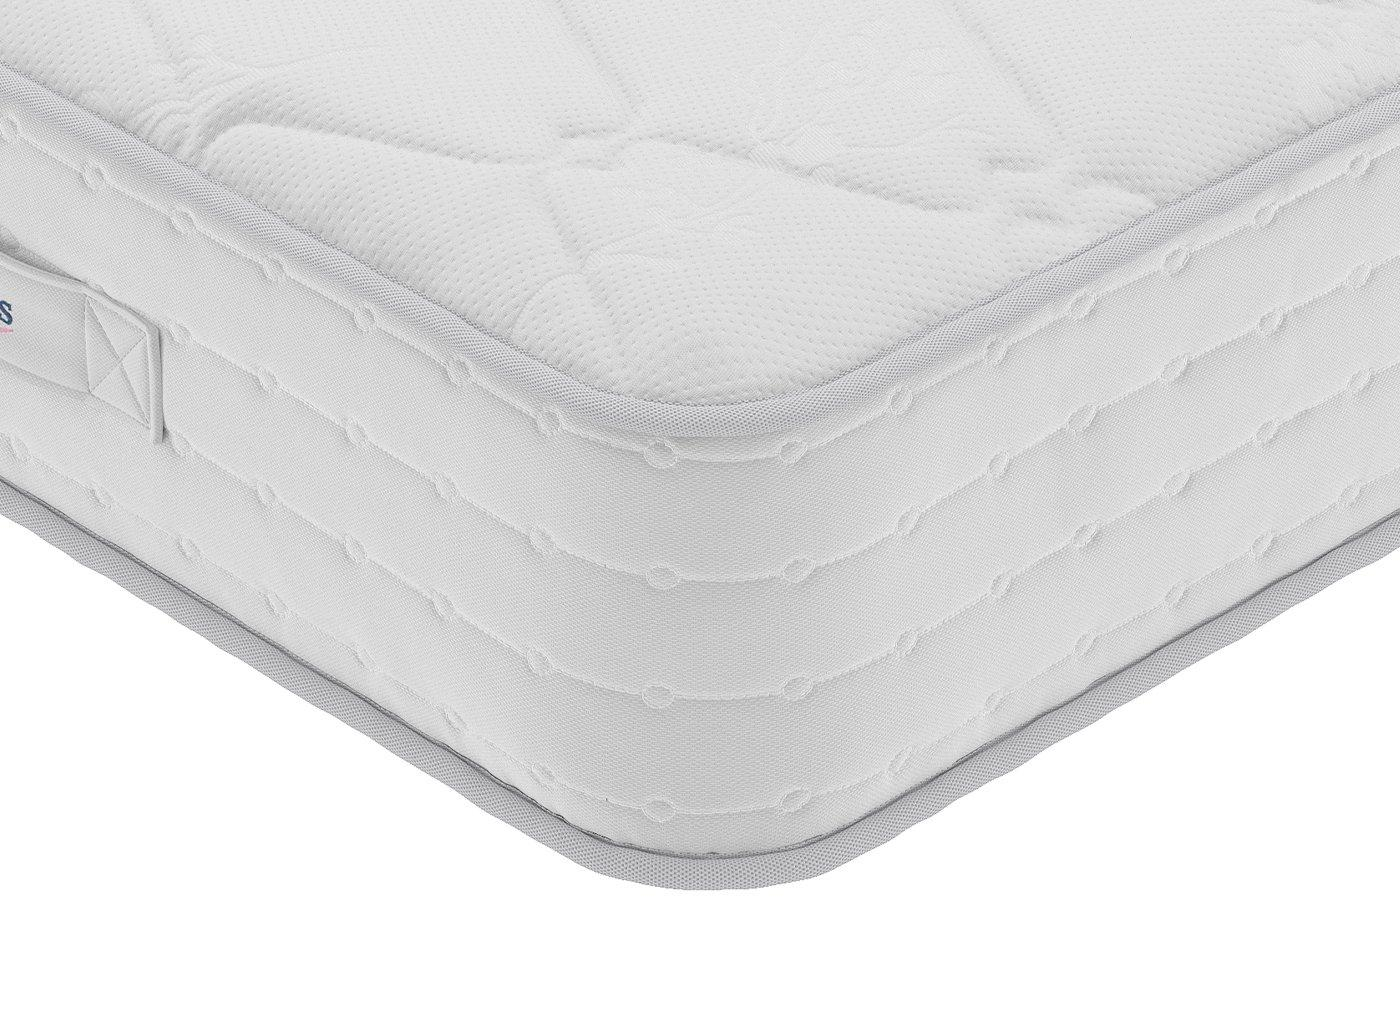 Johnstone 1000 Pocket Sprung Mattress - Medium 4'6 Double